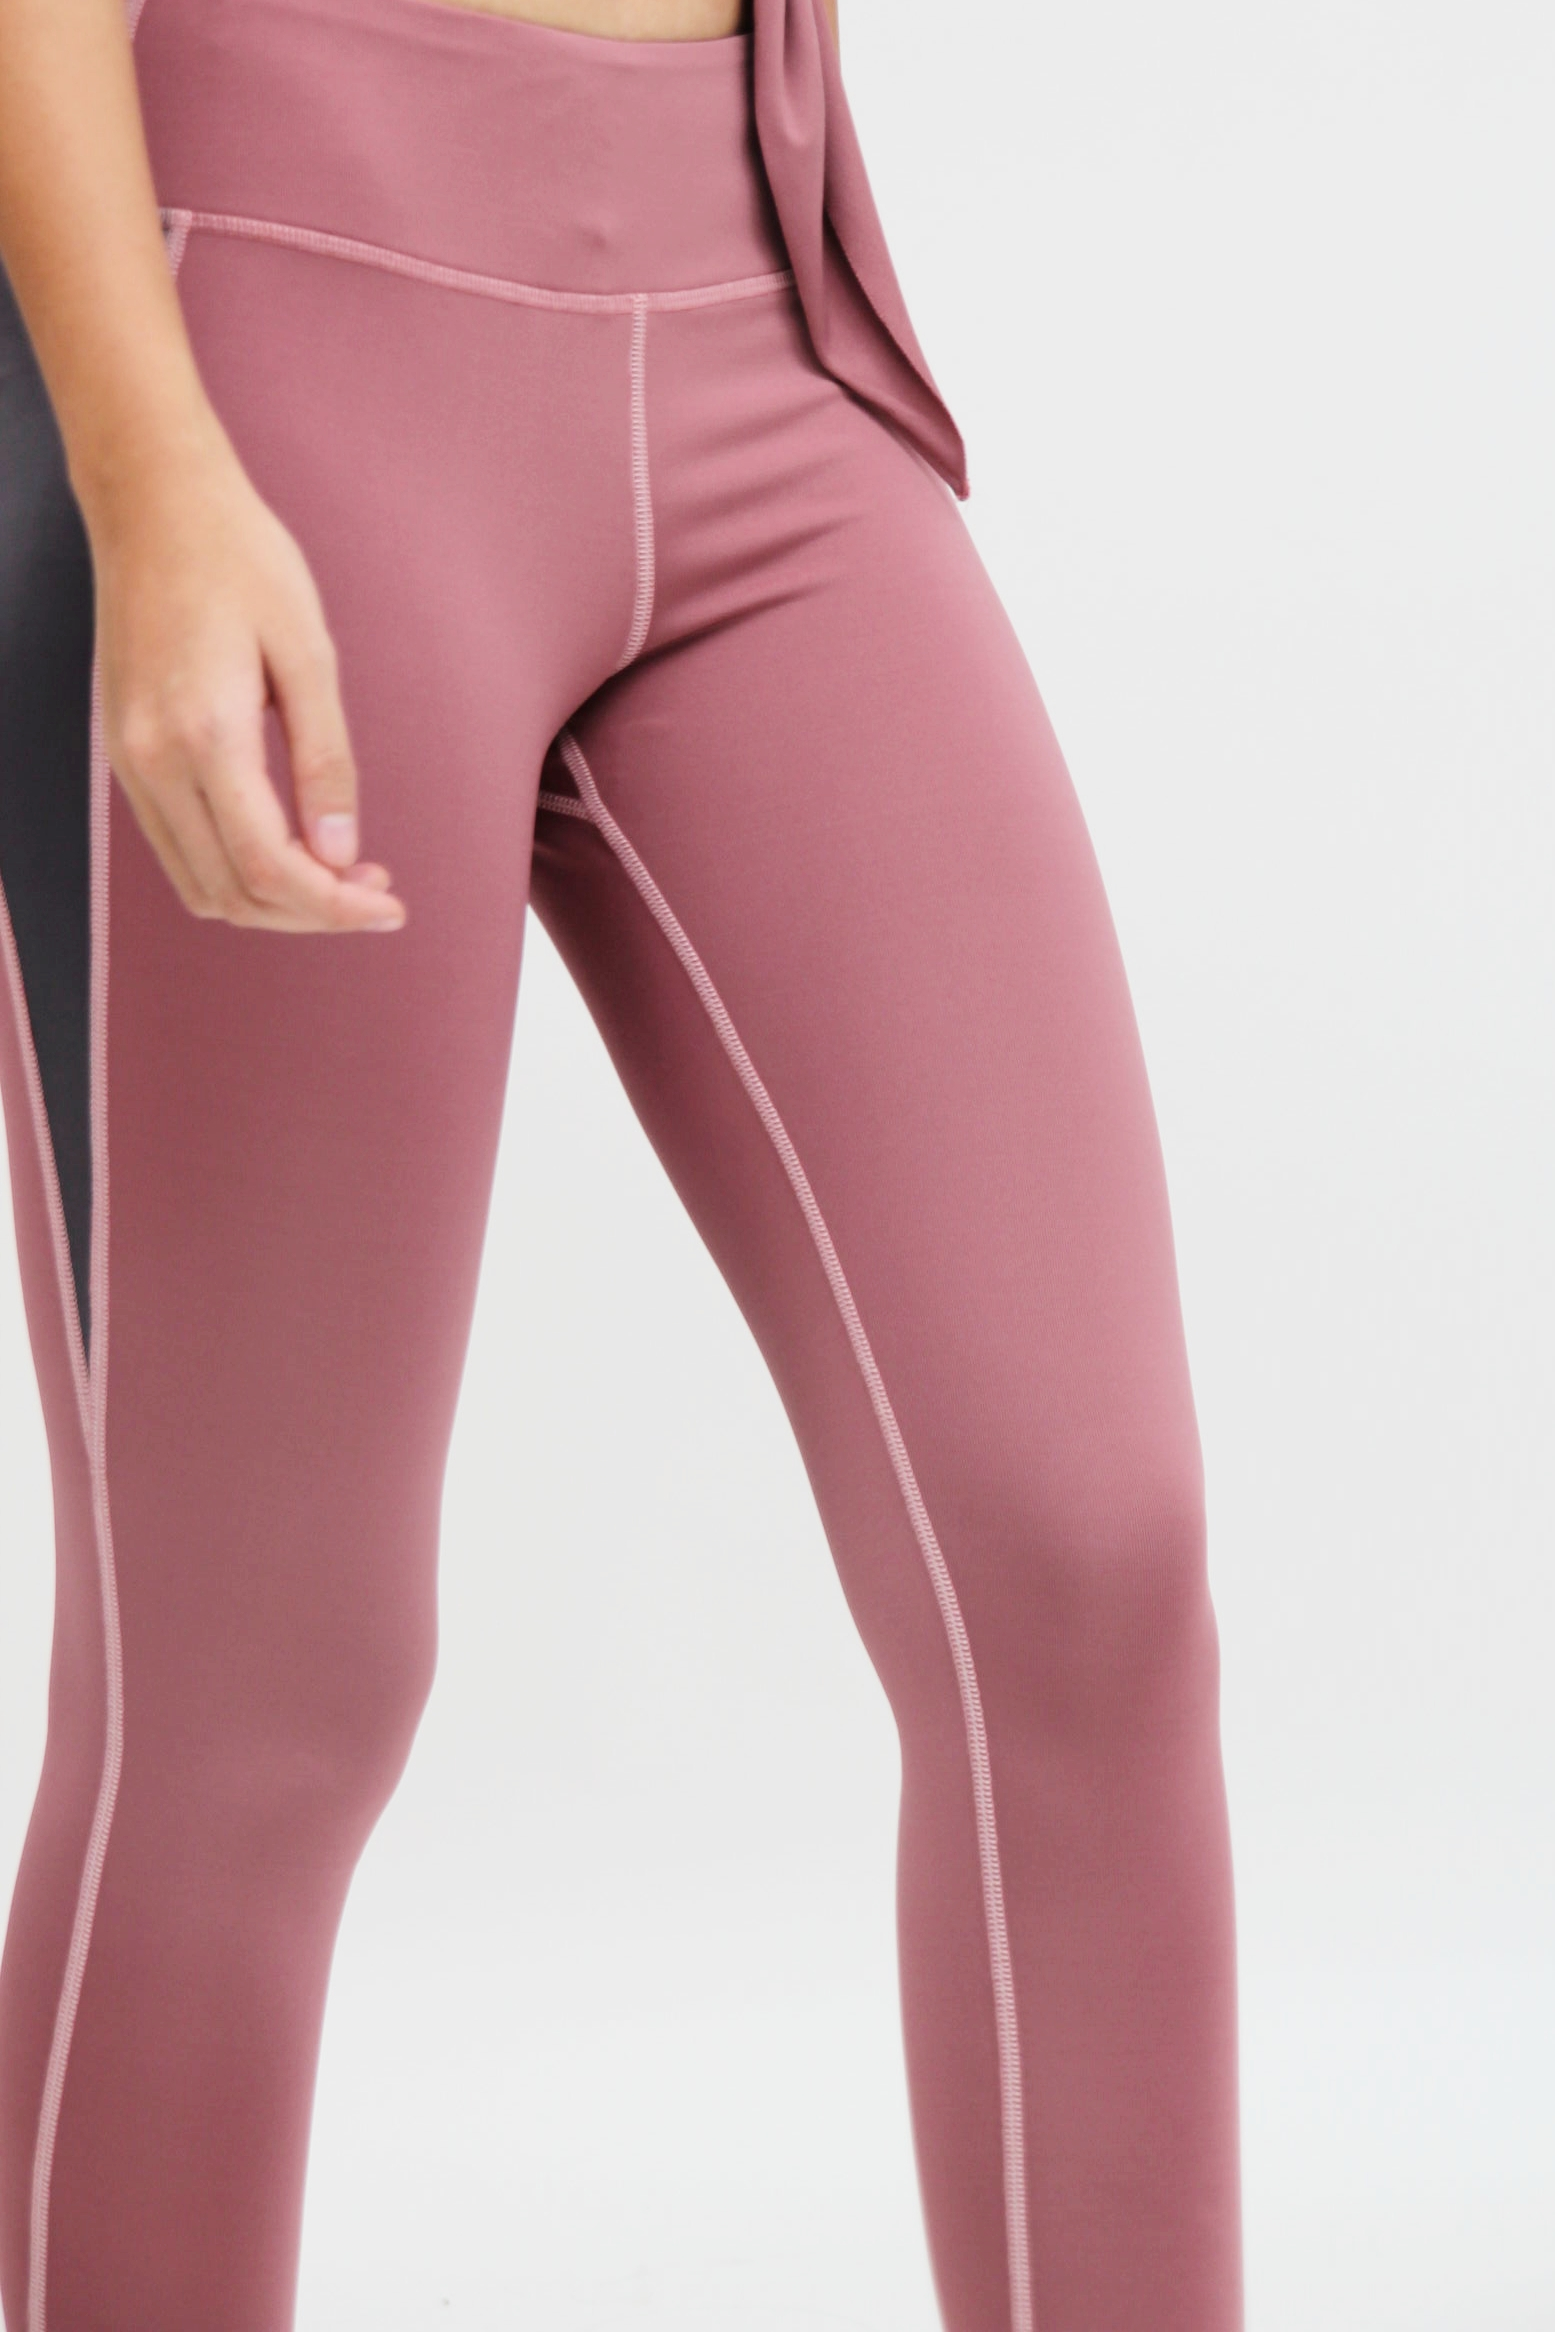 Skin-fit - Work with the bare minimum. A good pair of tights should never jeopardize functionality and quality. We don't compromise on comfort too- with the right size, they'll fit you like a second skin.